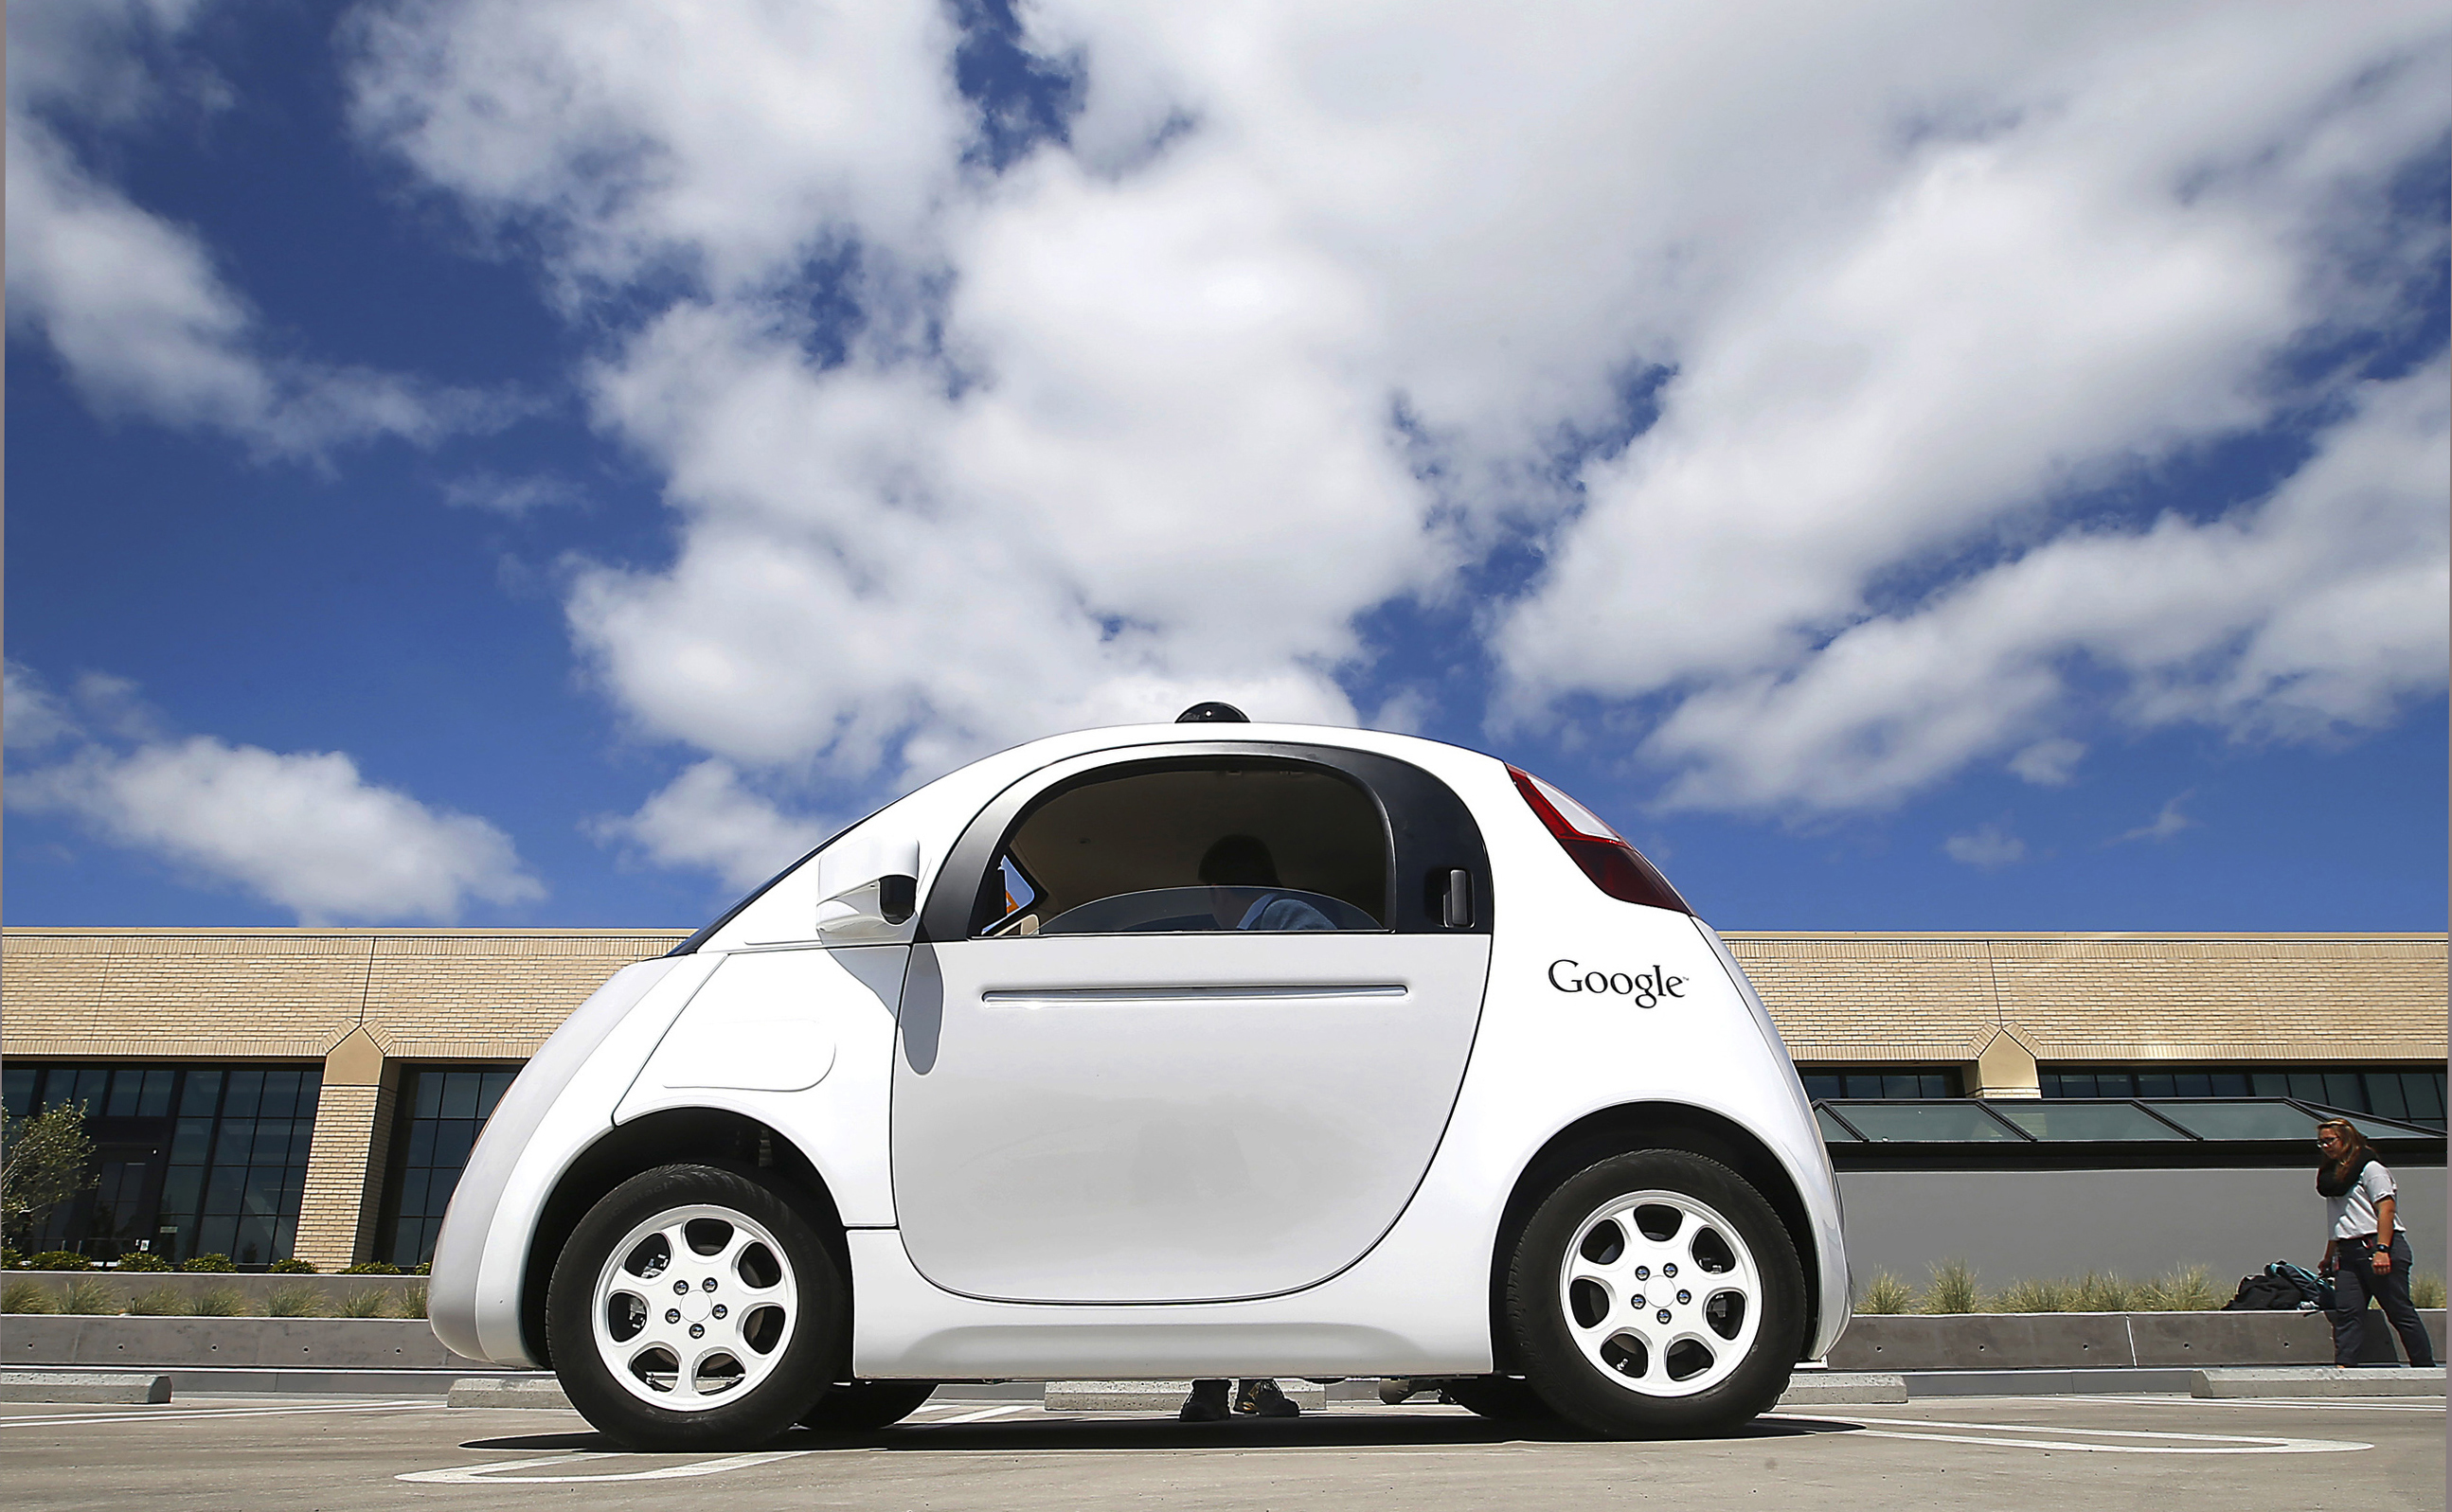 What are the challenges of driverless cars?